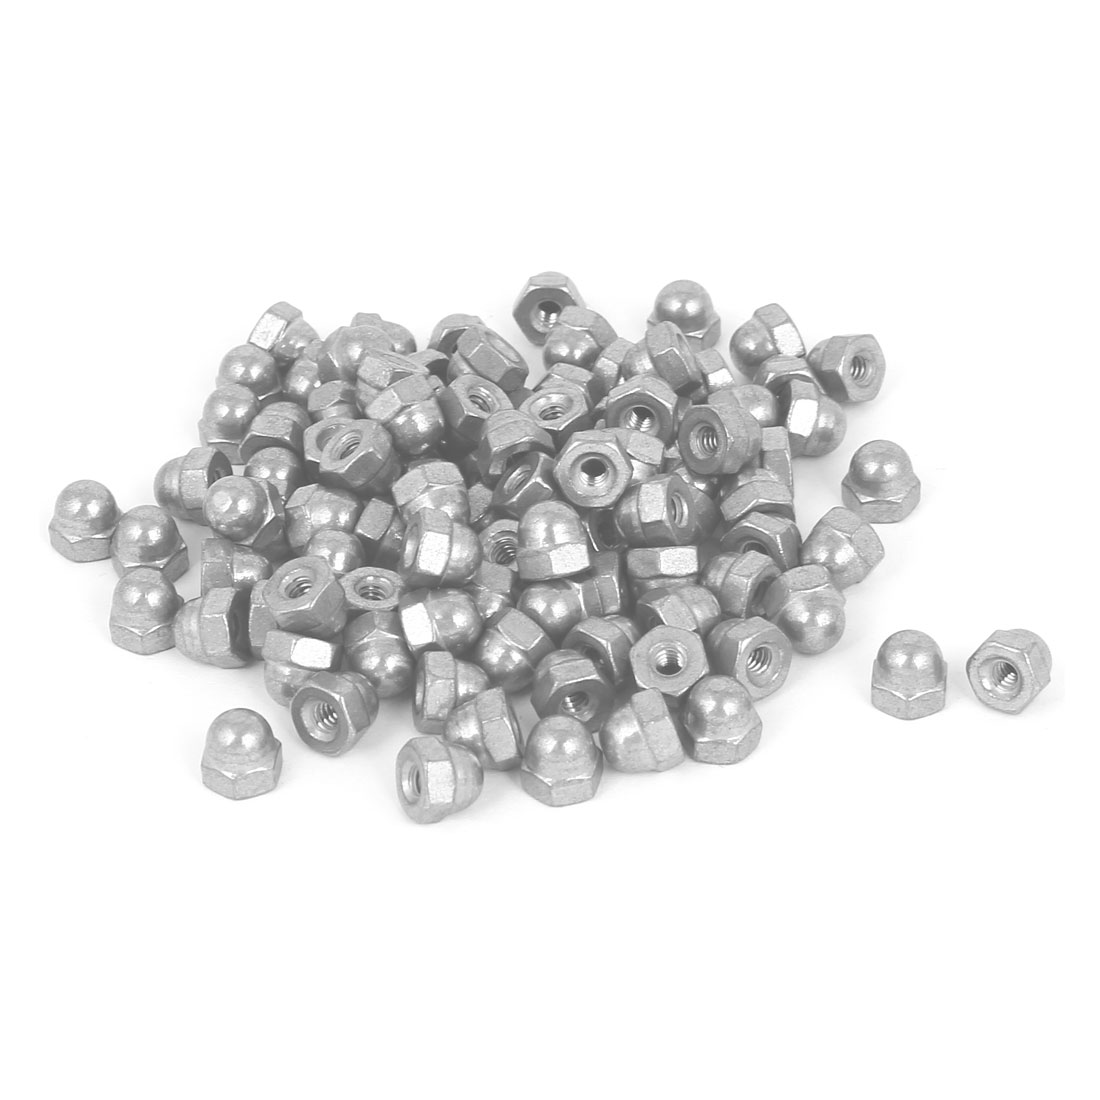 6#-32 304 Stainless Steel Dome Head Cap Hexagon Nuts Silver Tone 100 Pcs